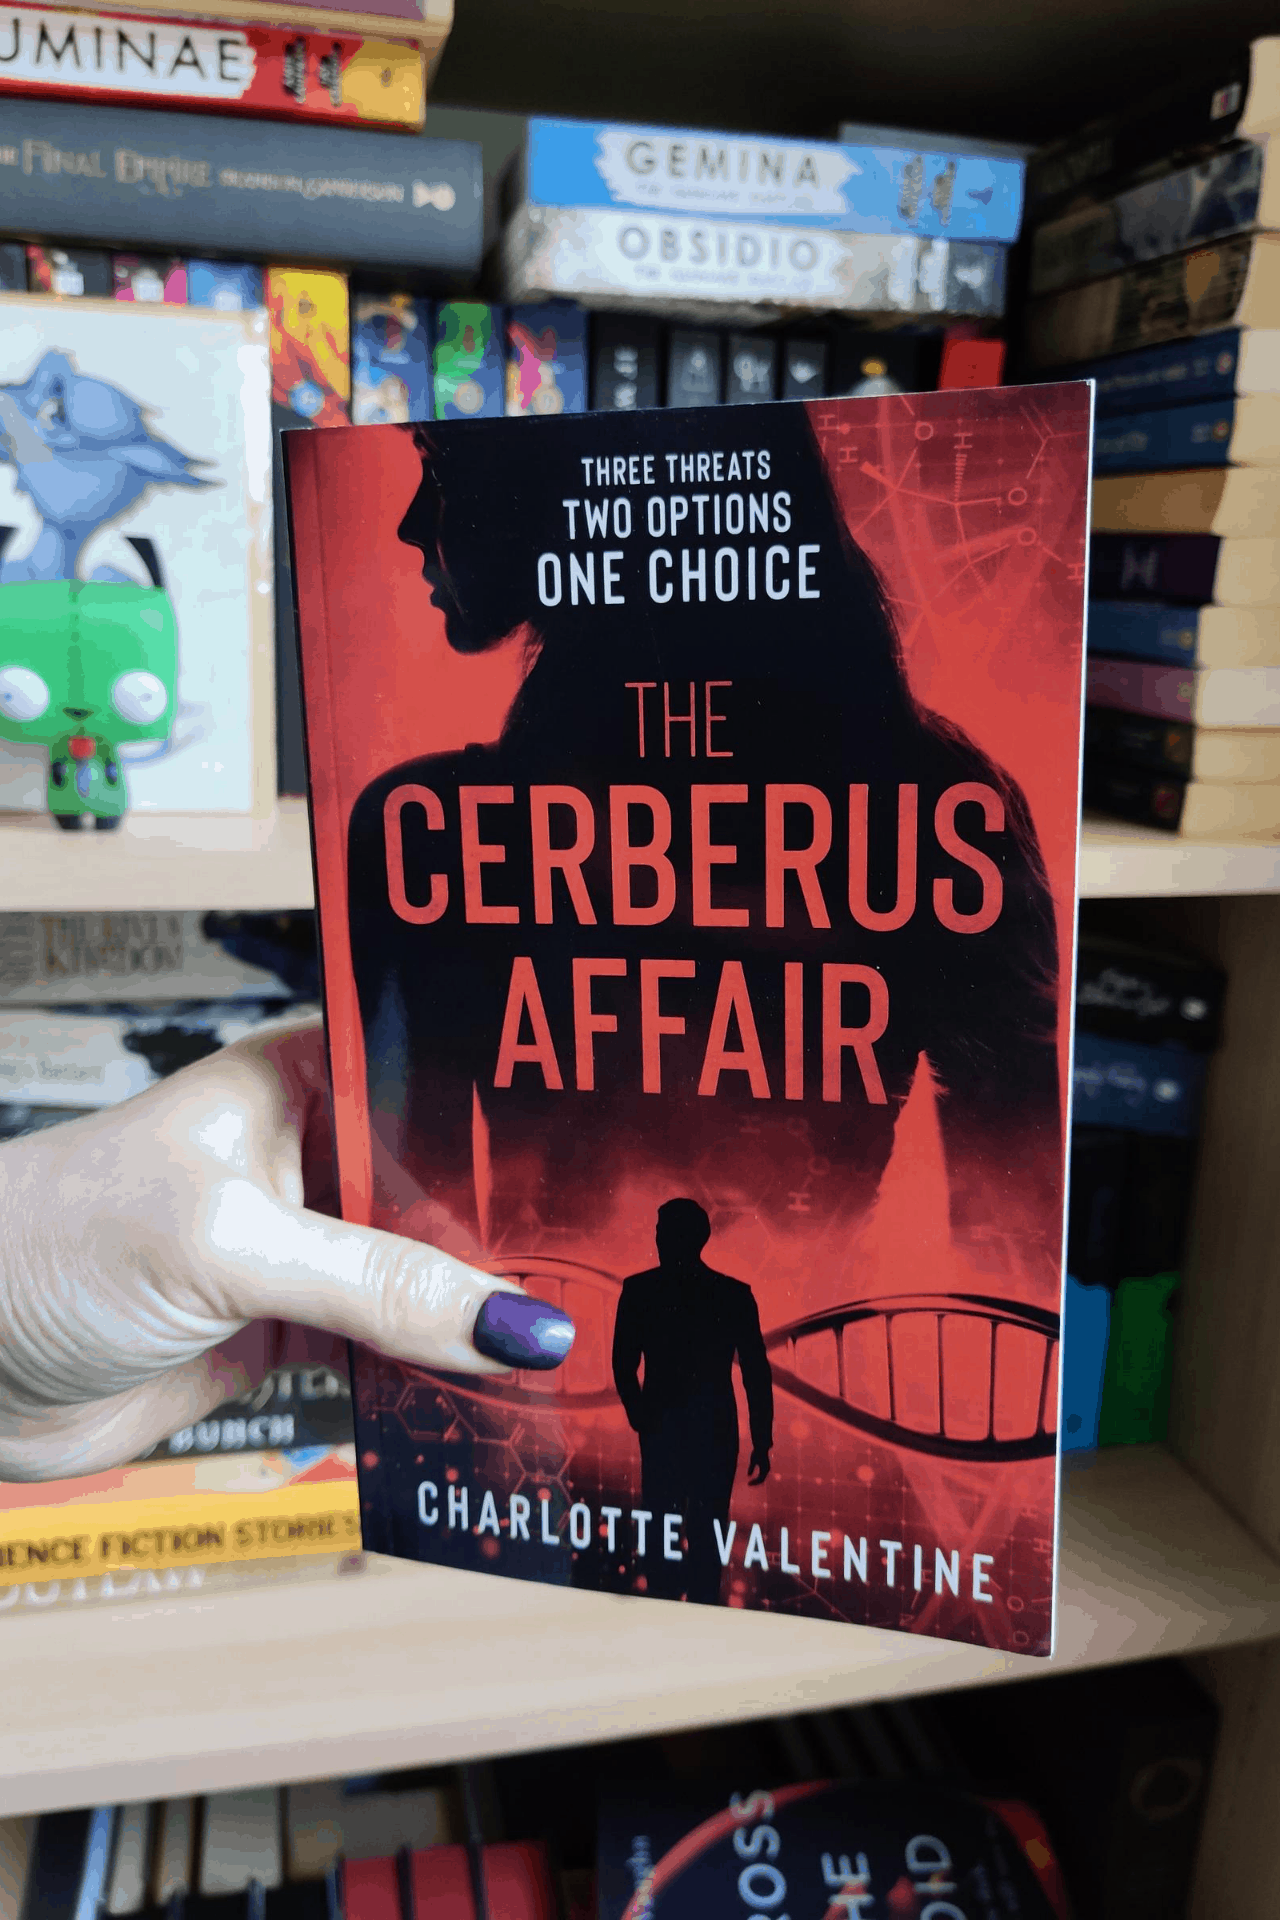 The cover of The Cerberus Affair, by Charlotte Valentine